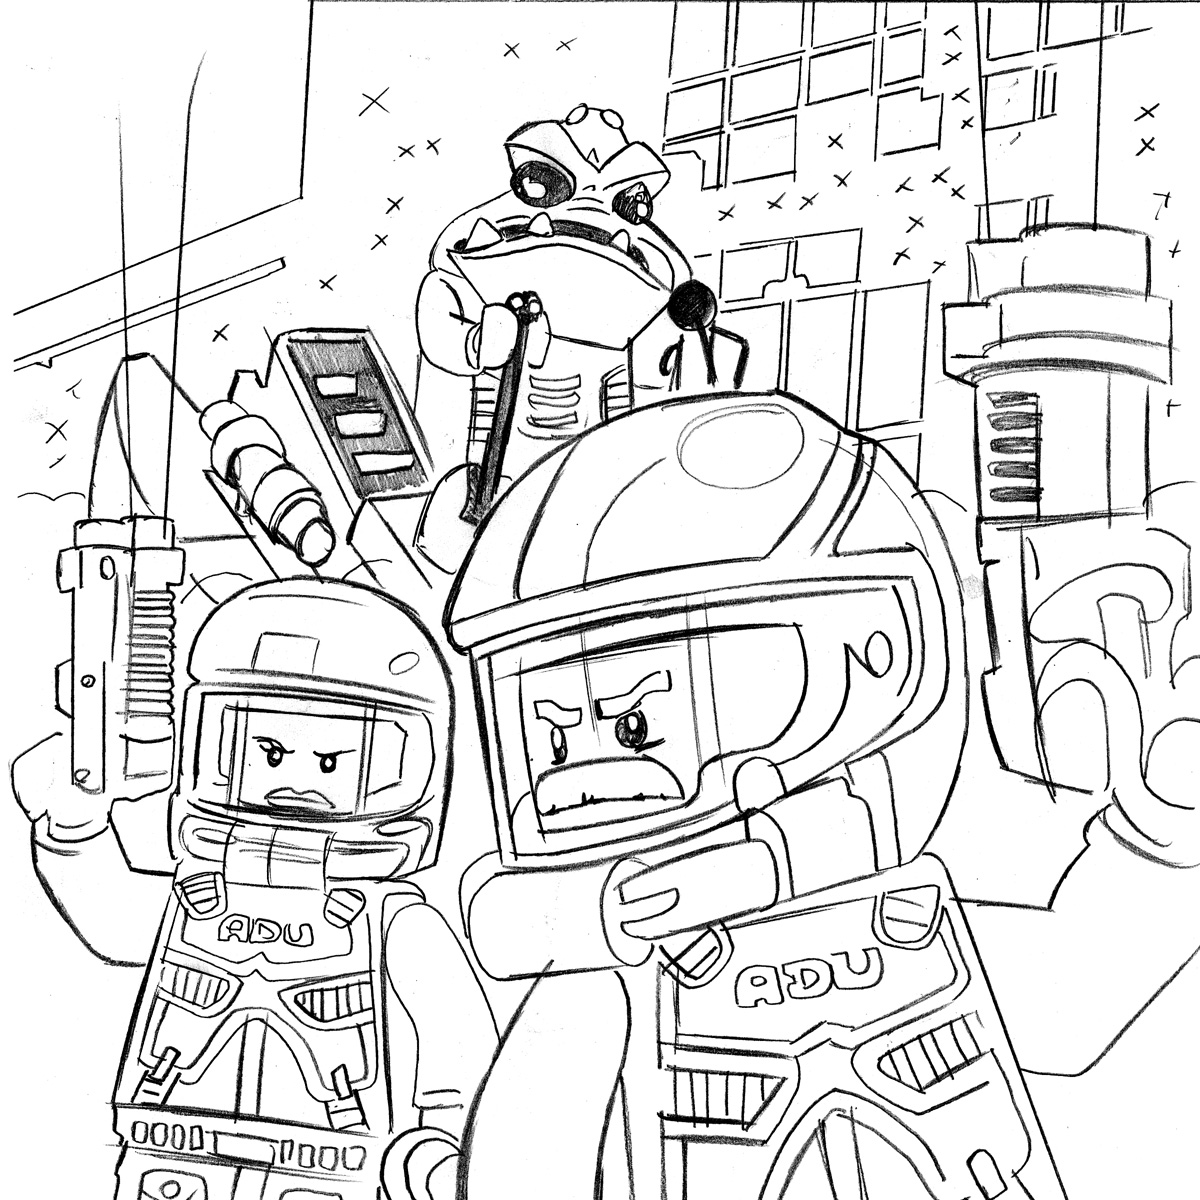 1200x1200 Lego City Coloring Pages Coloringsuite Com Fair People